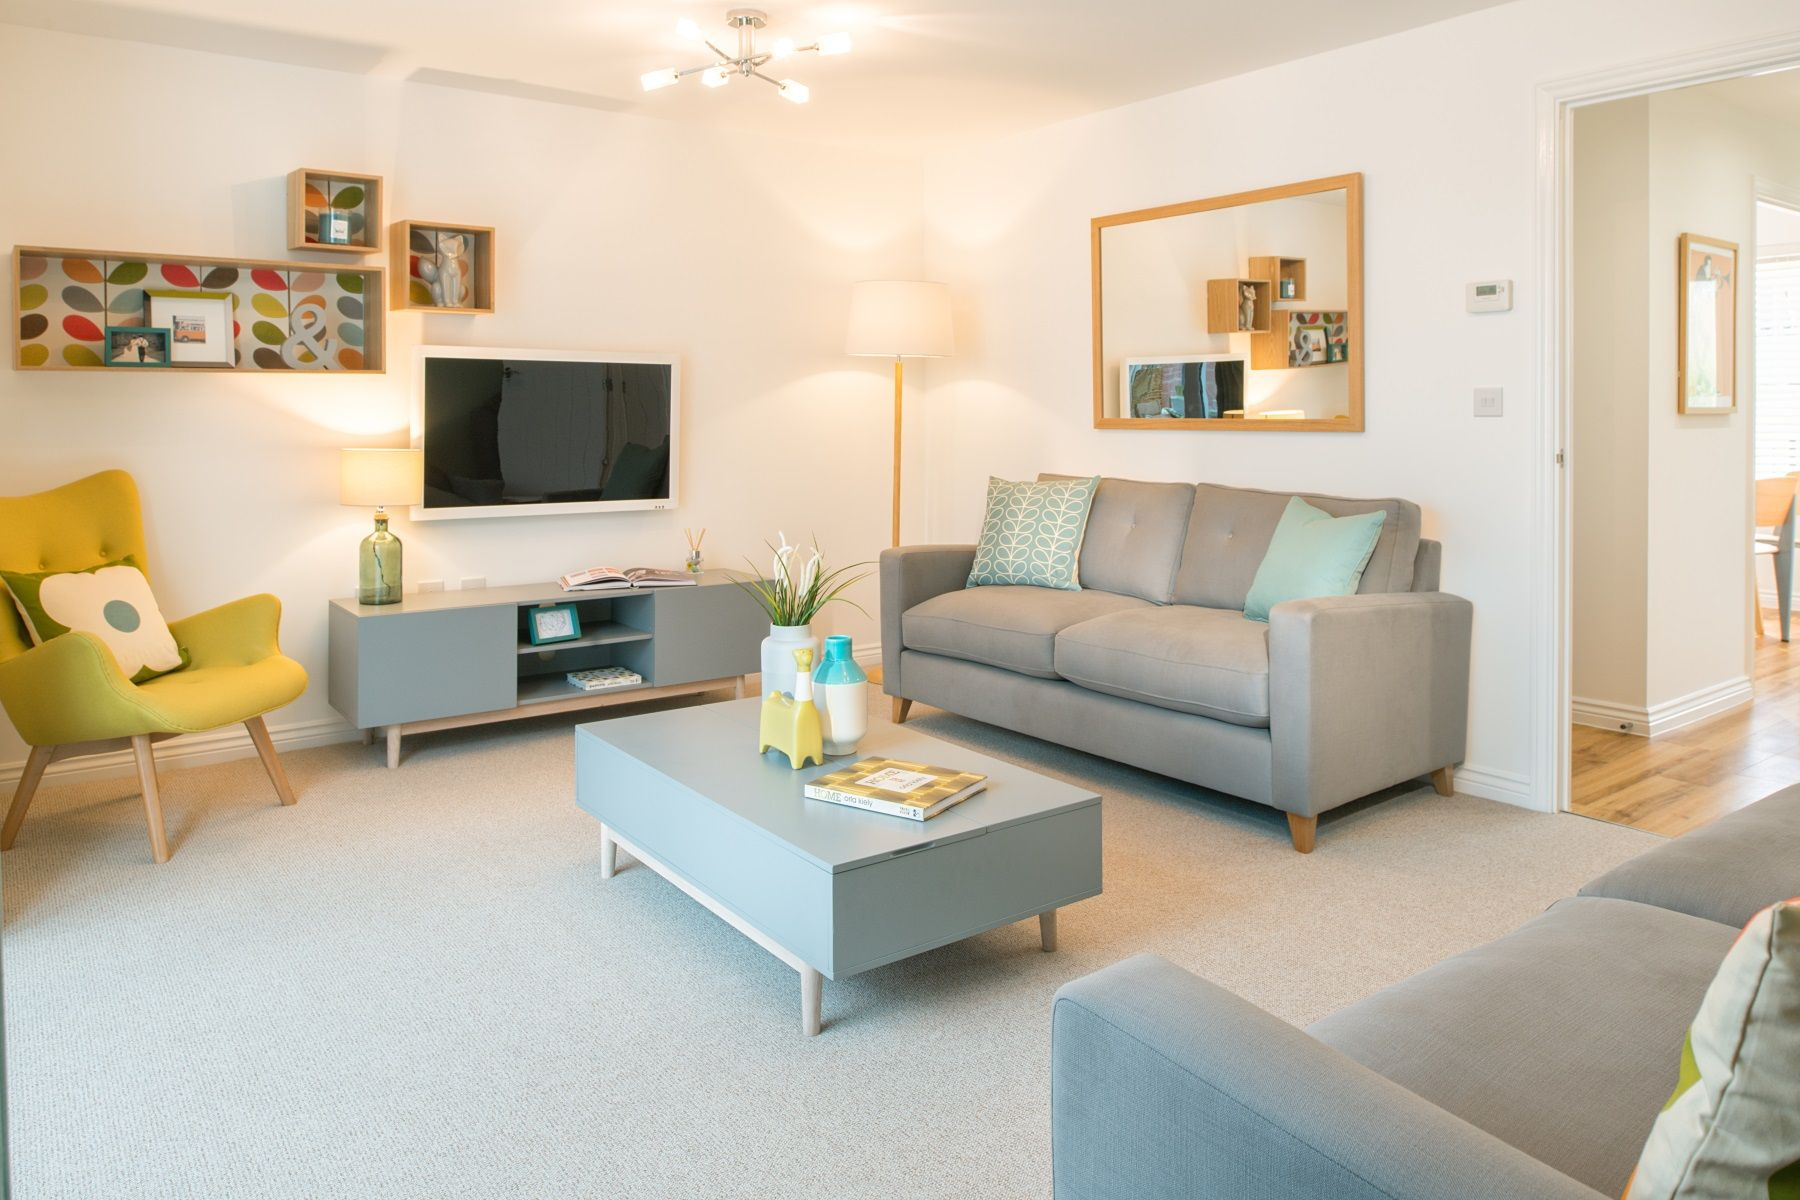 TW Exeter - Buckingham Heights - Flatford example living room